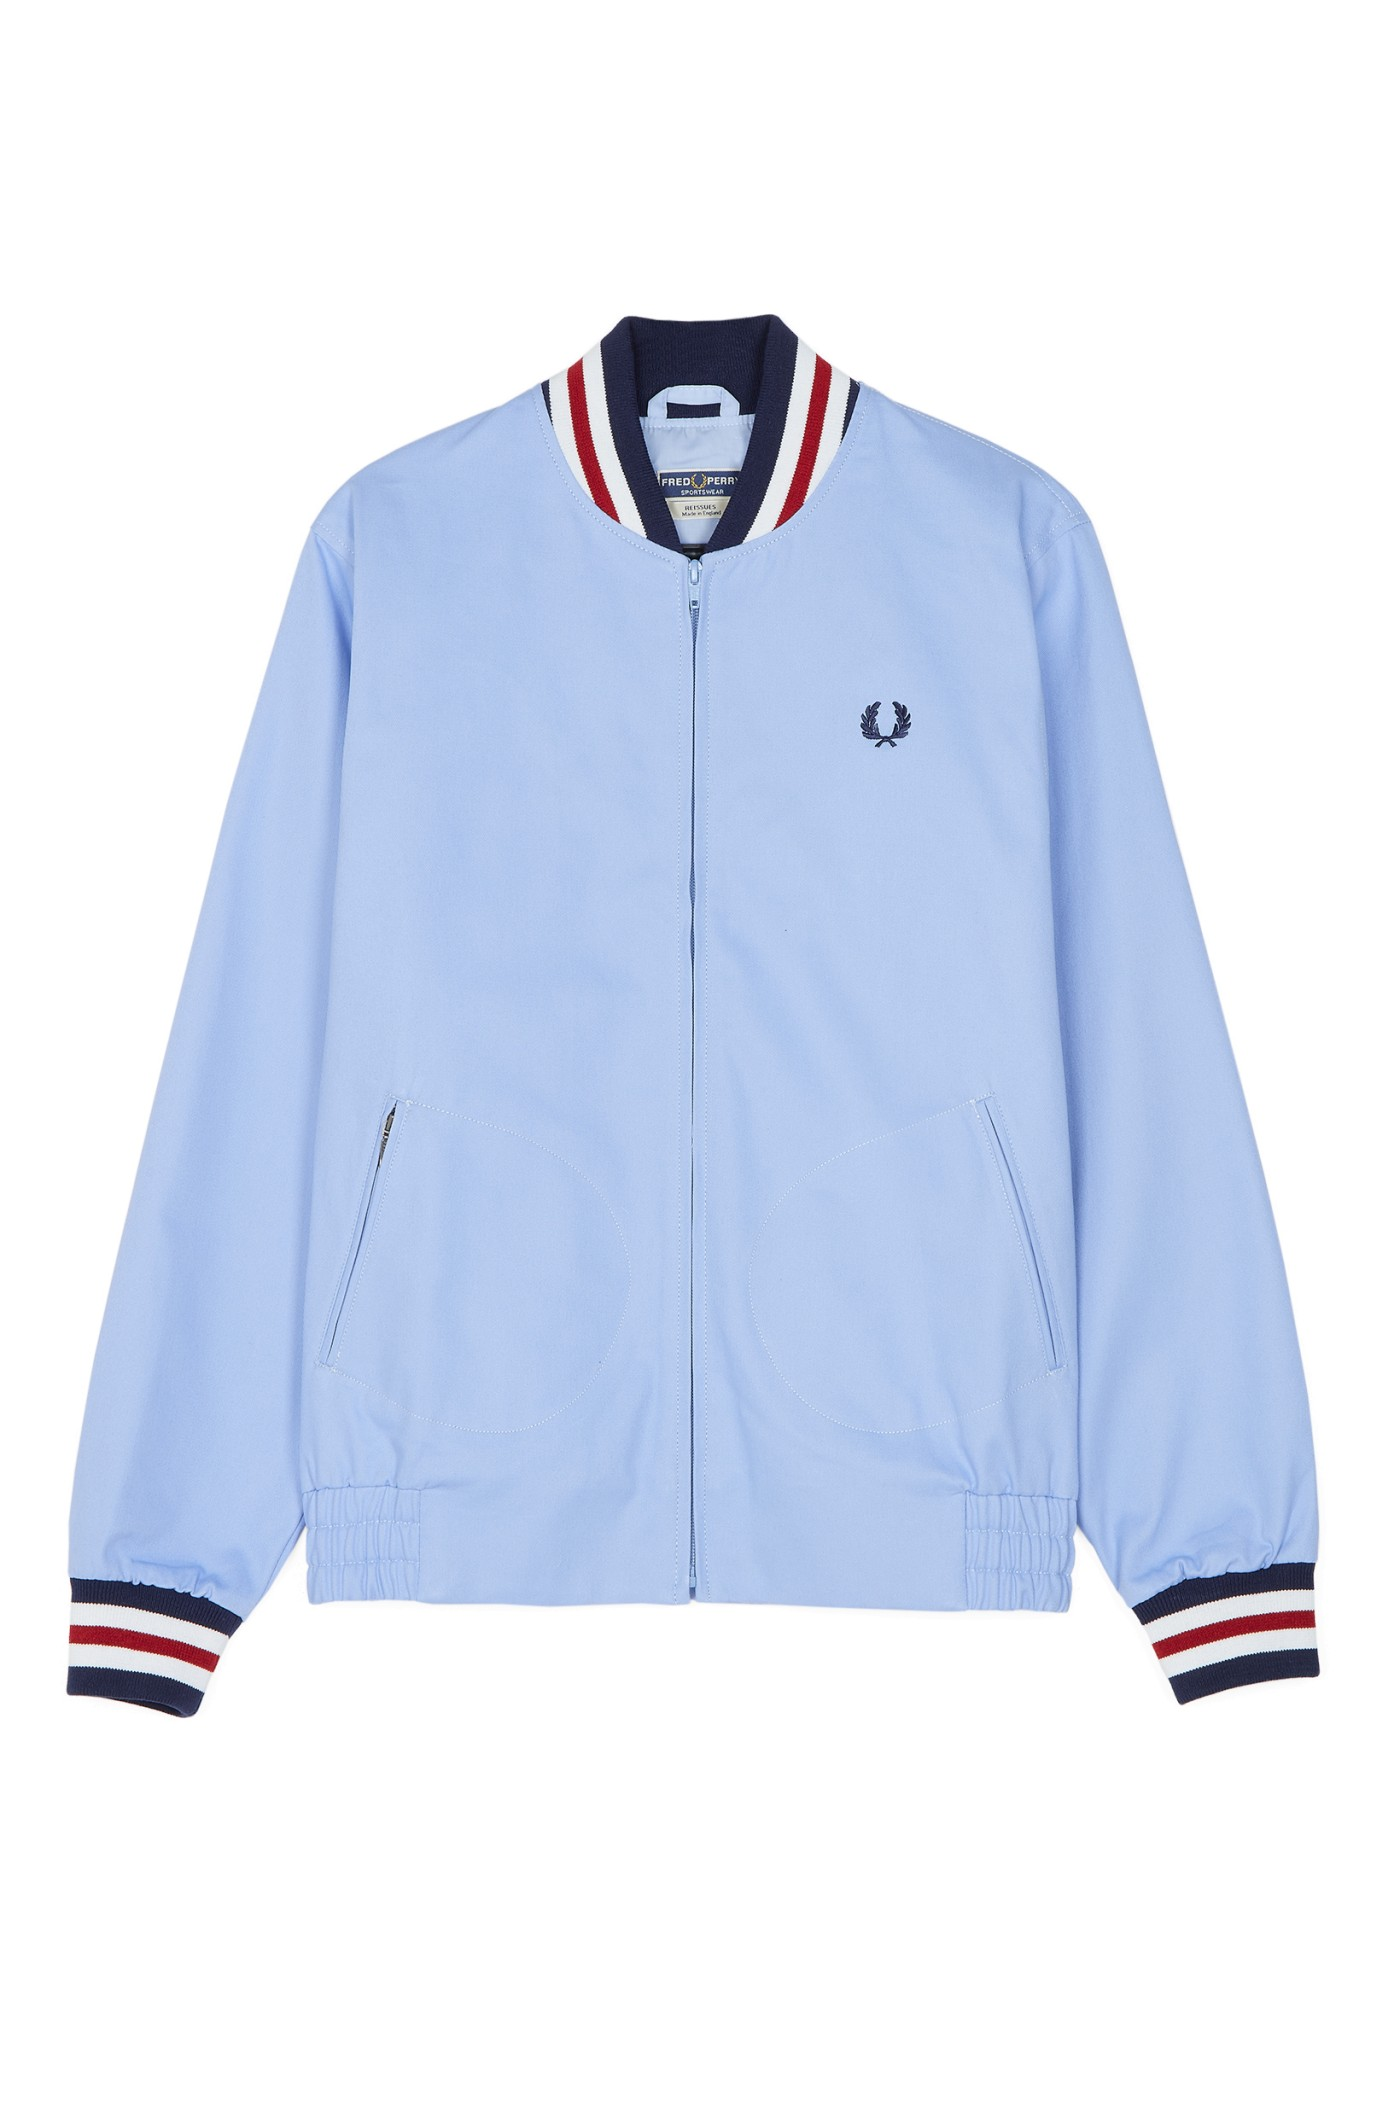 Fred Perry Reissues Made In England Original Tennis Bomber